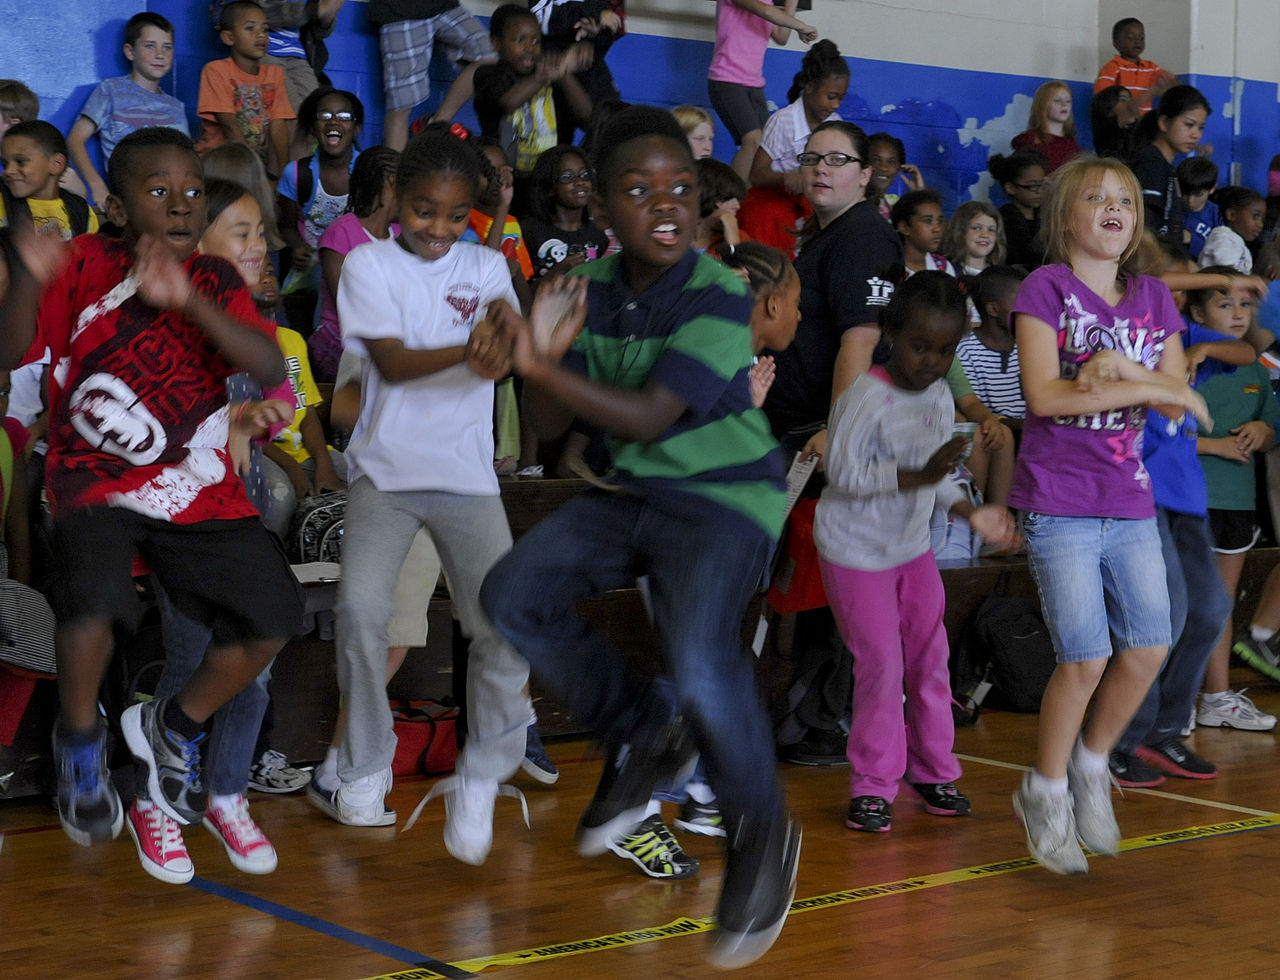 File:Children dancing to Gangnam Style.jpg - Wikimedia Commons